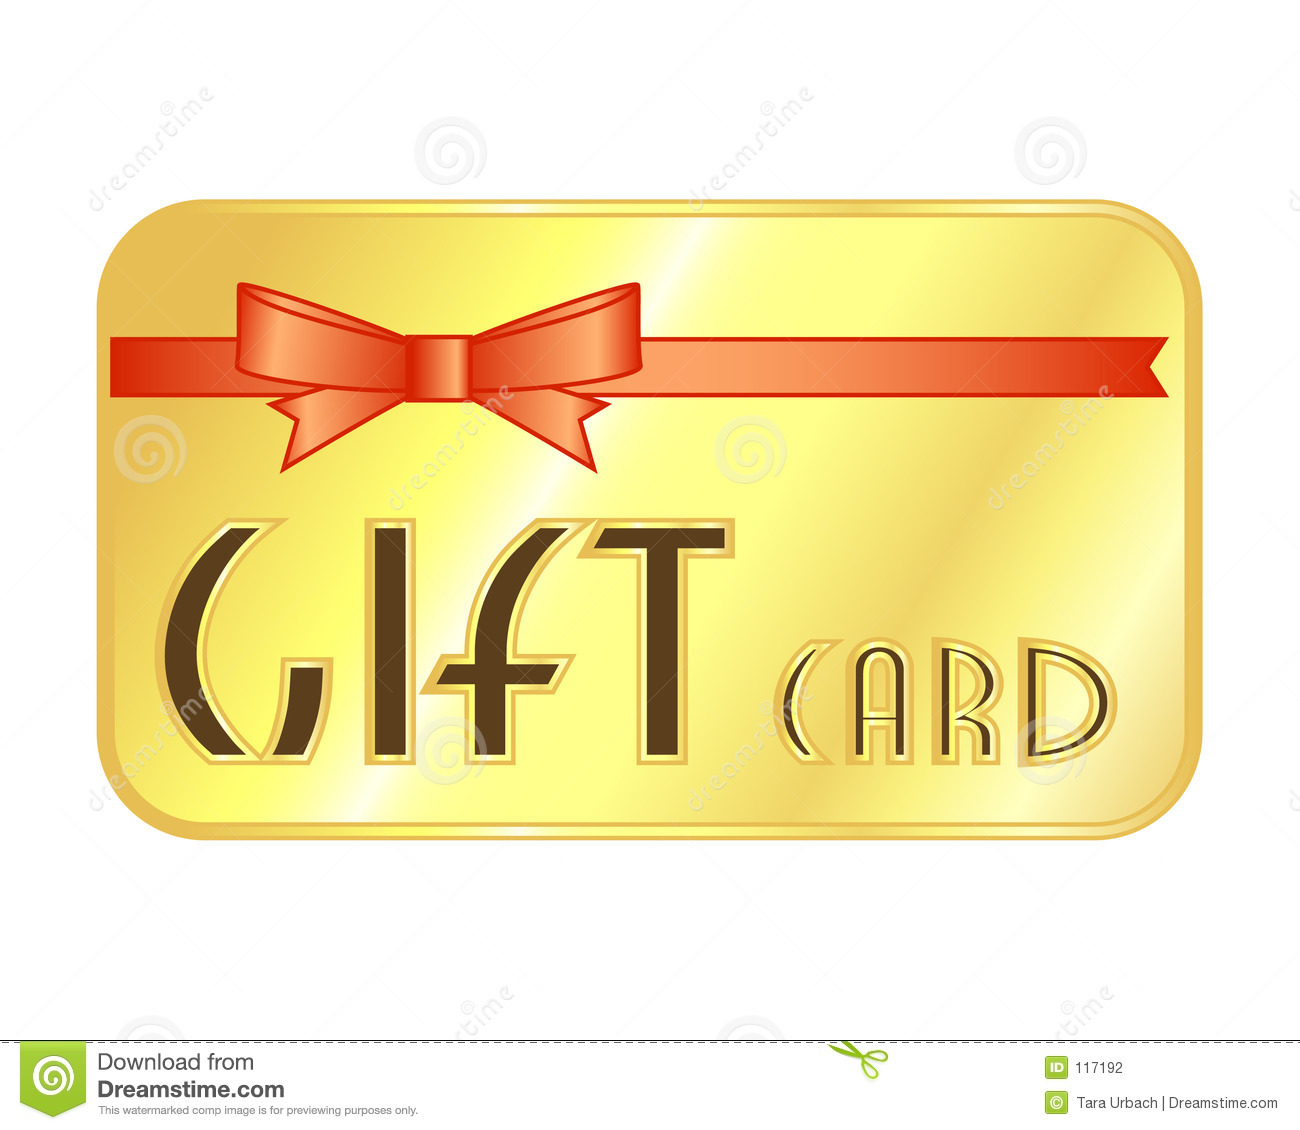 It is a graphic of Selective Gift Certificate Clip Art